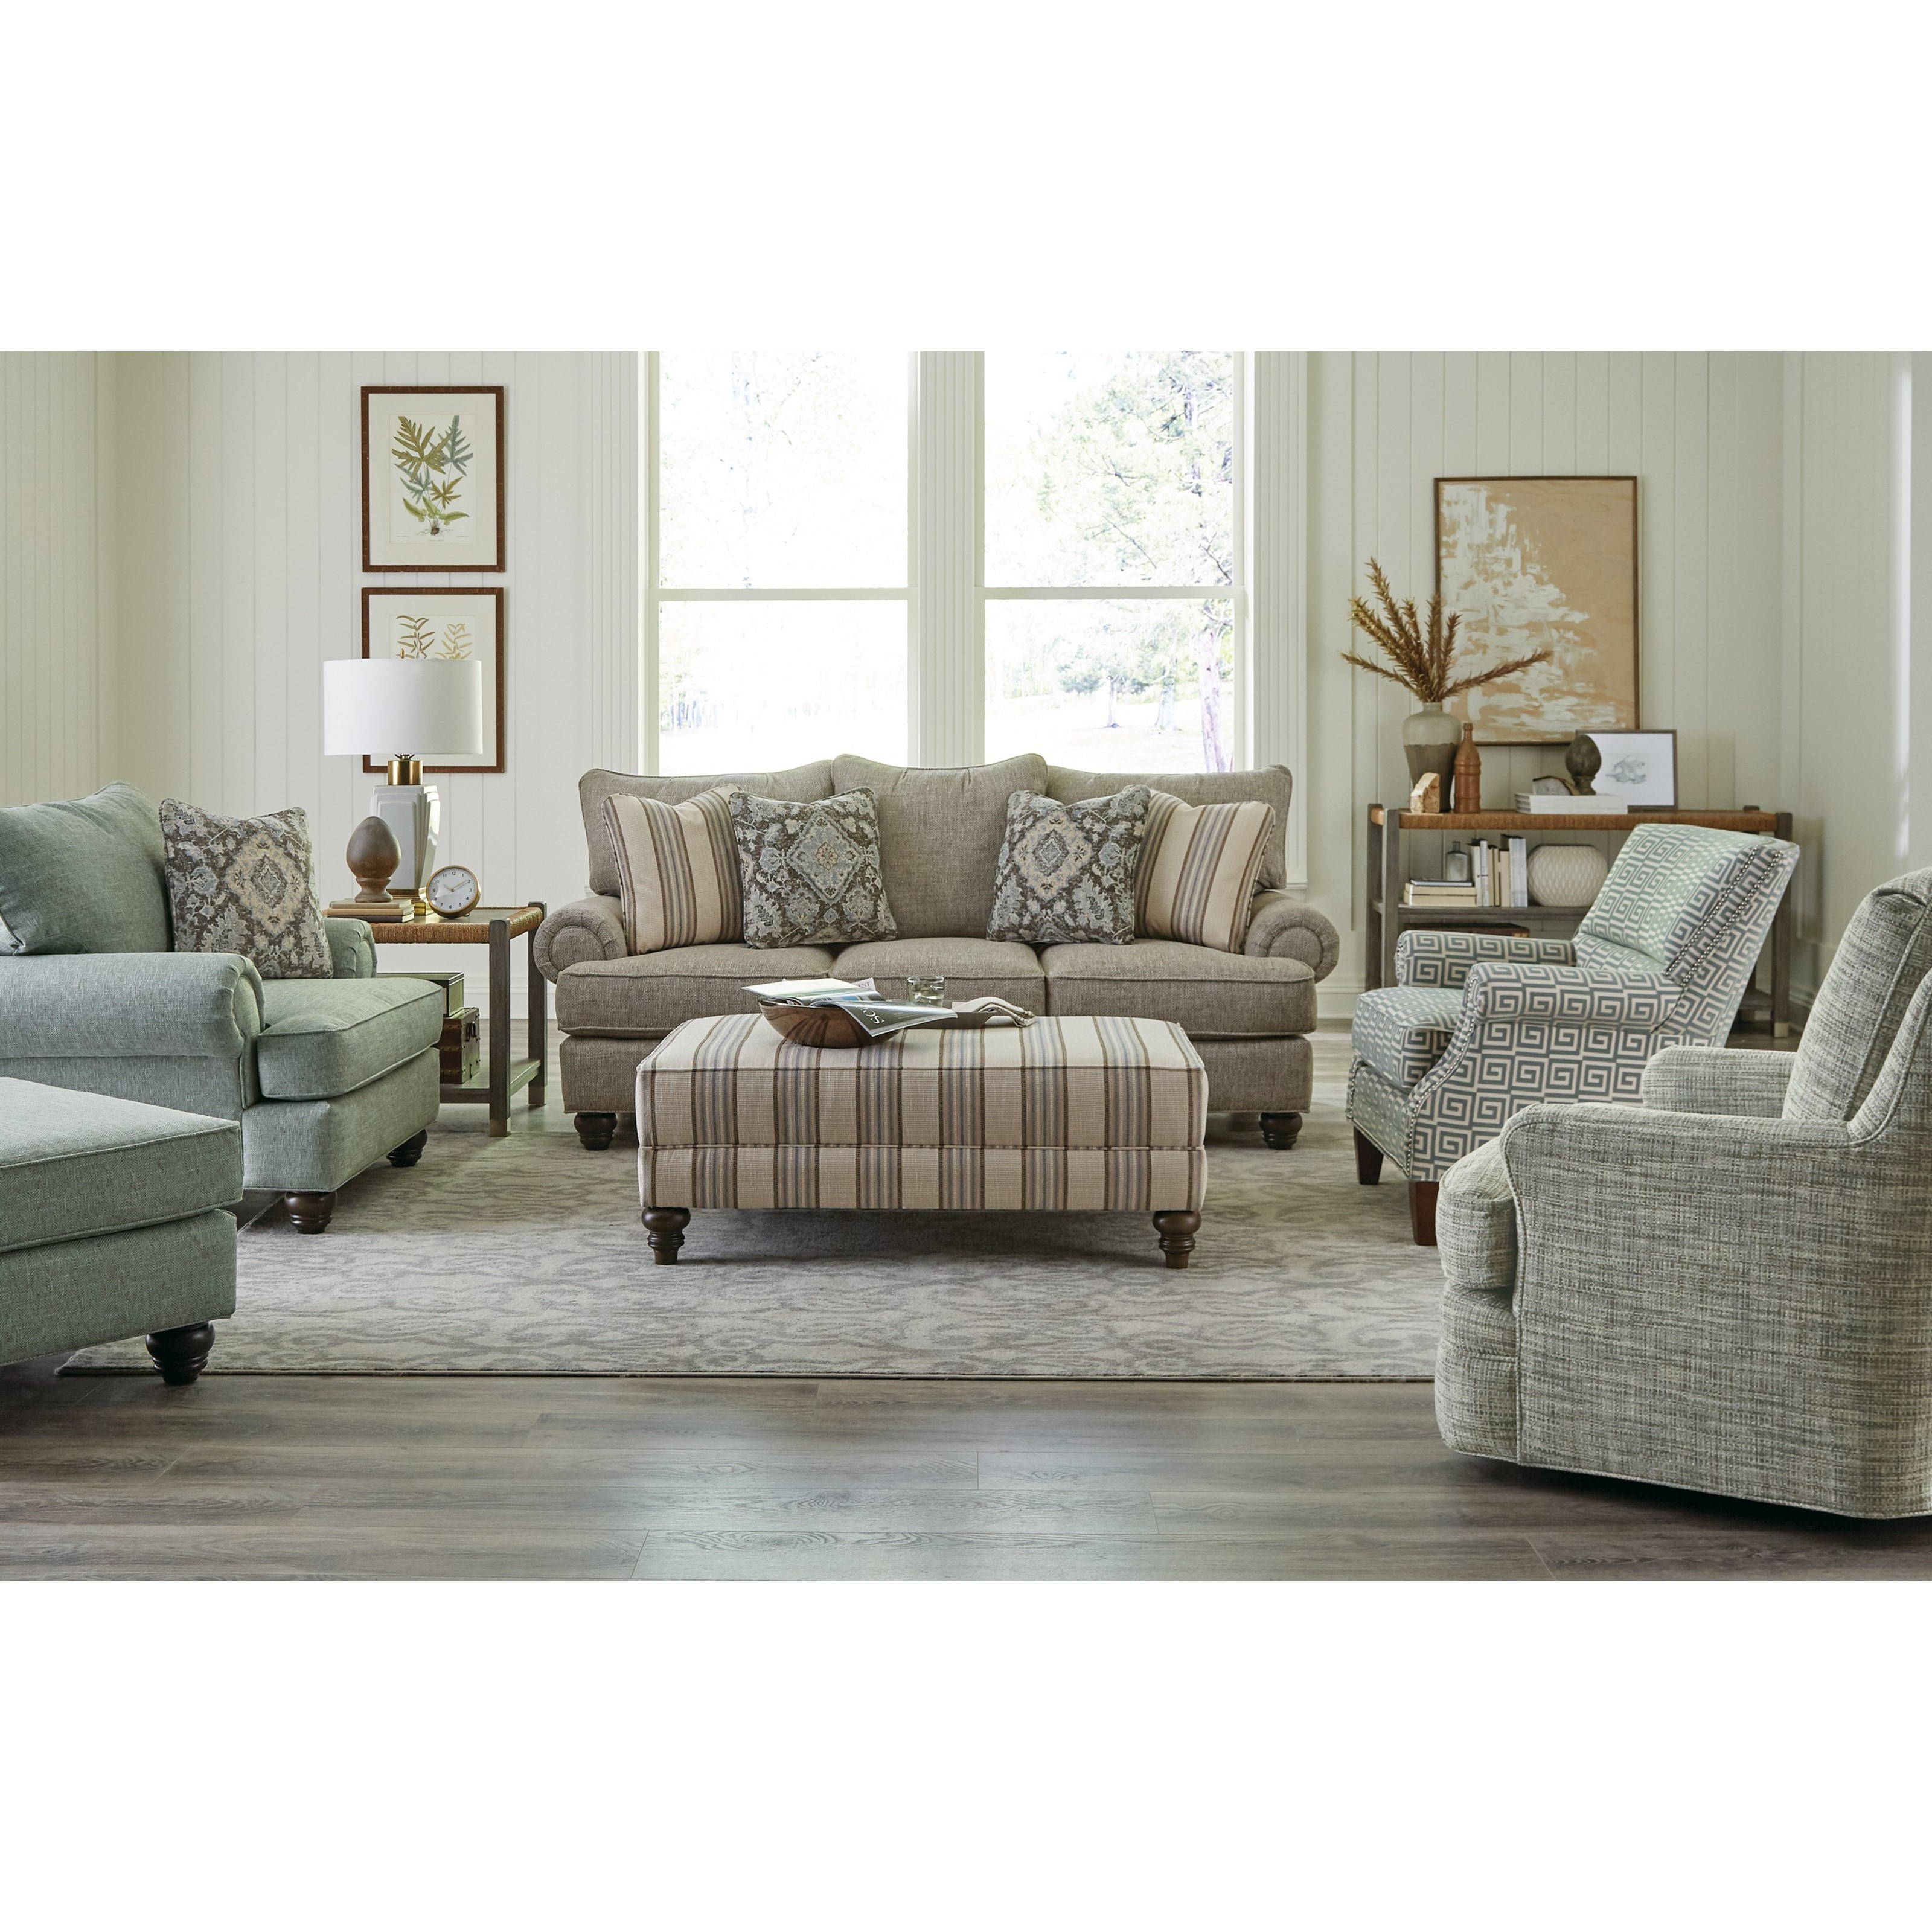 700450 Living Room Group by Craftmaster at Jacksonville Furniture Mart